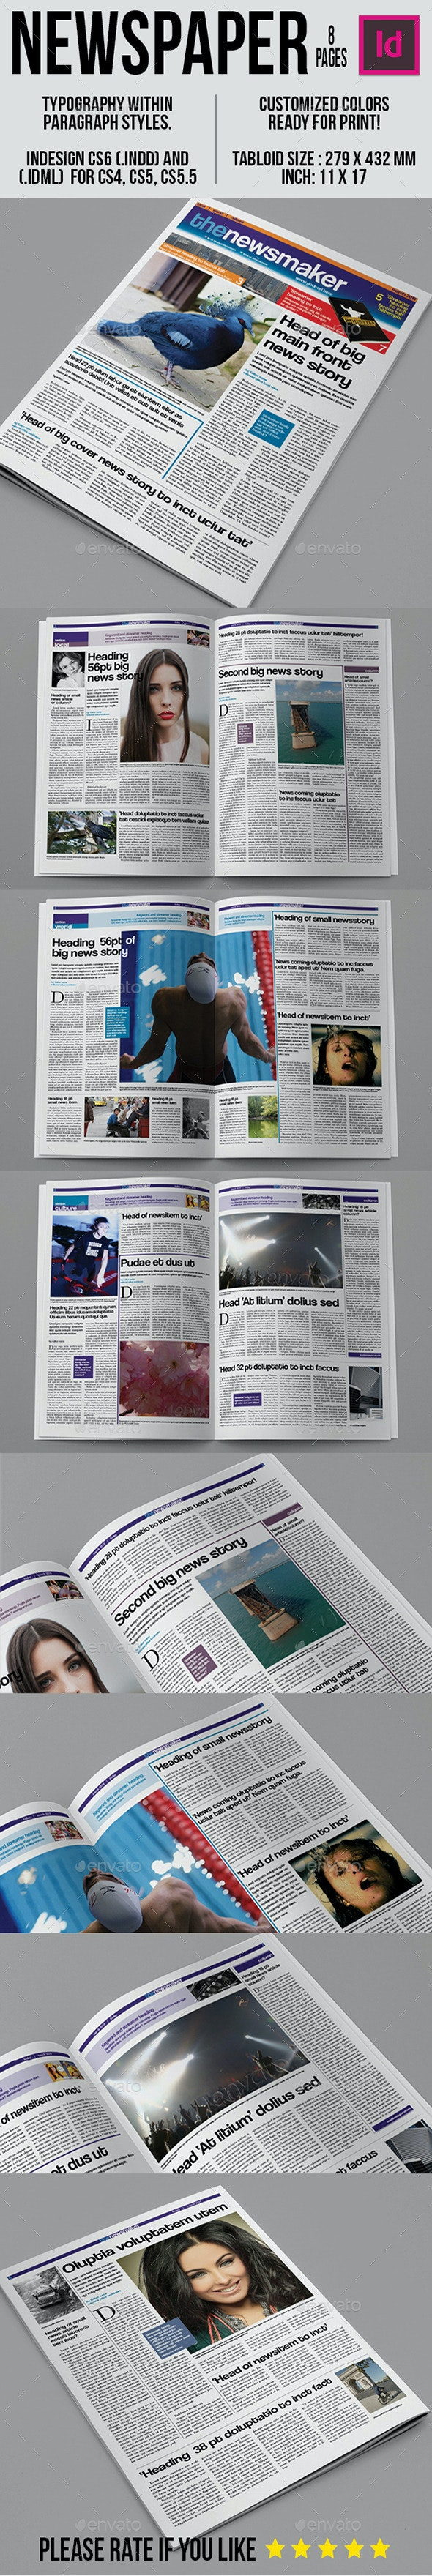 Tabloid Newspaper Template - Newsletters Print Templates